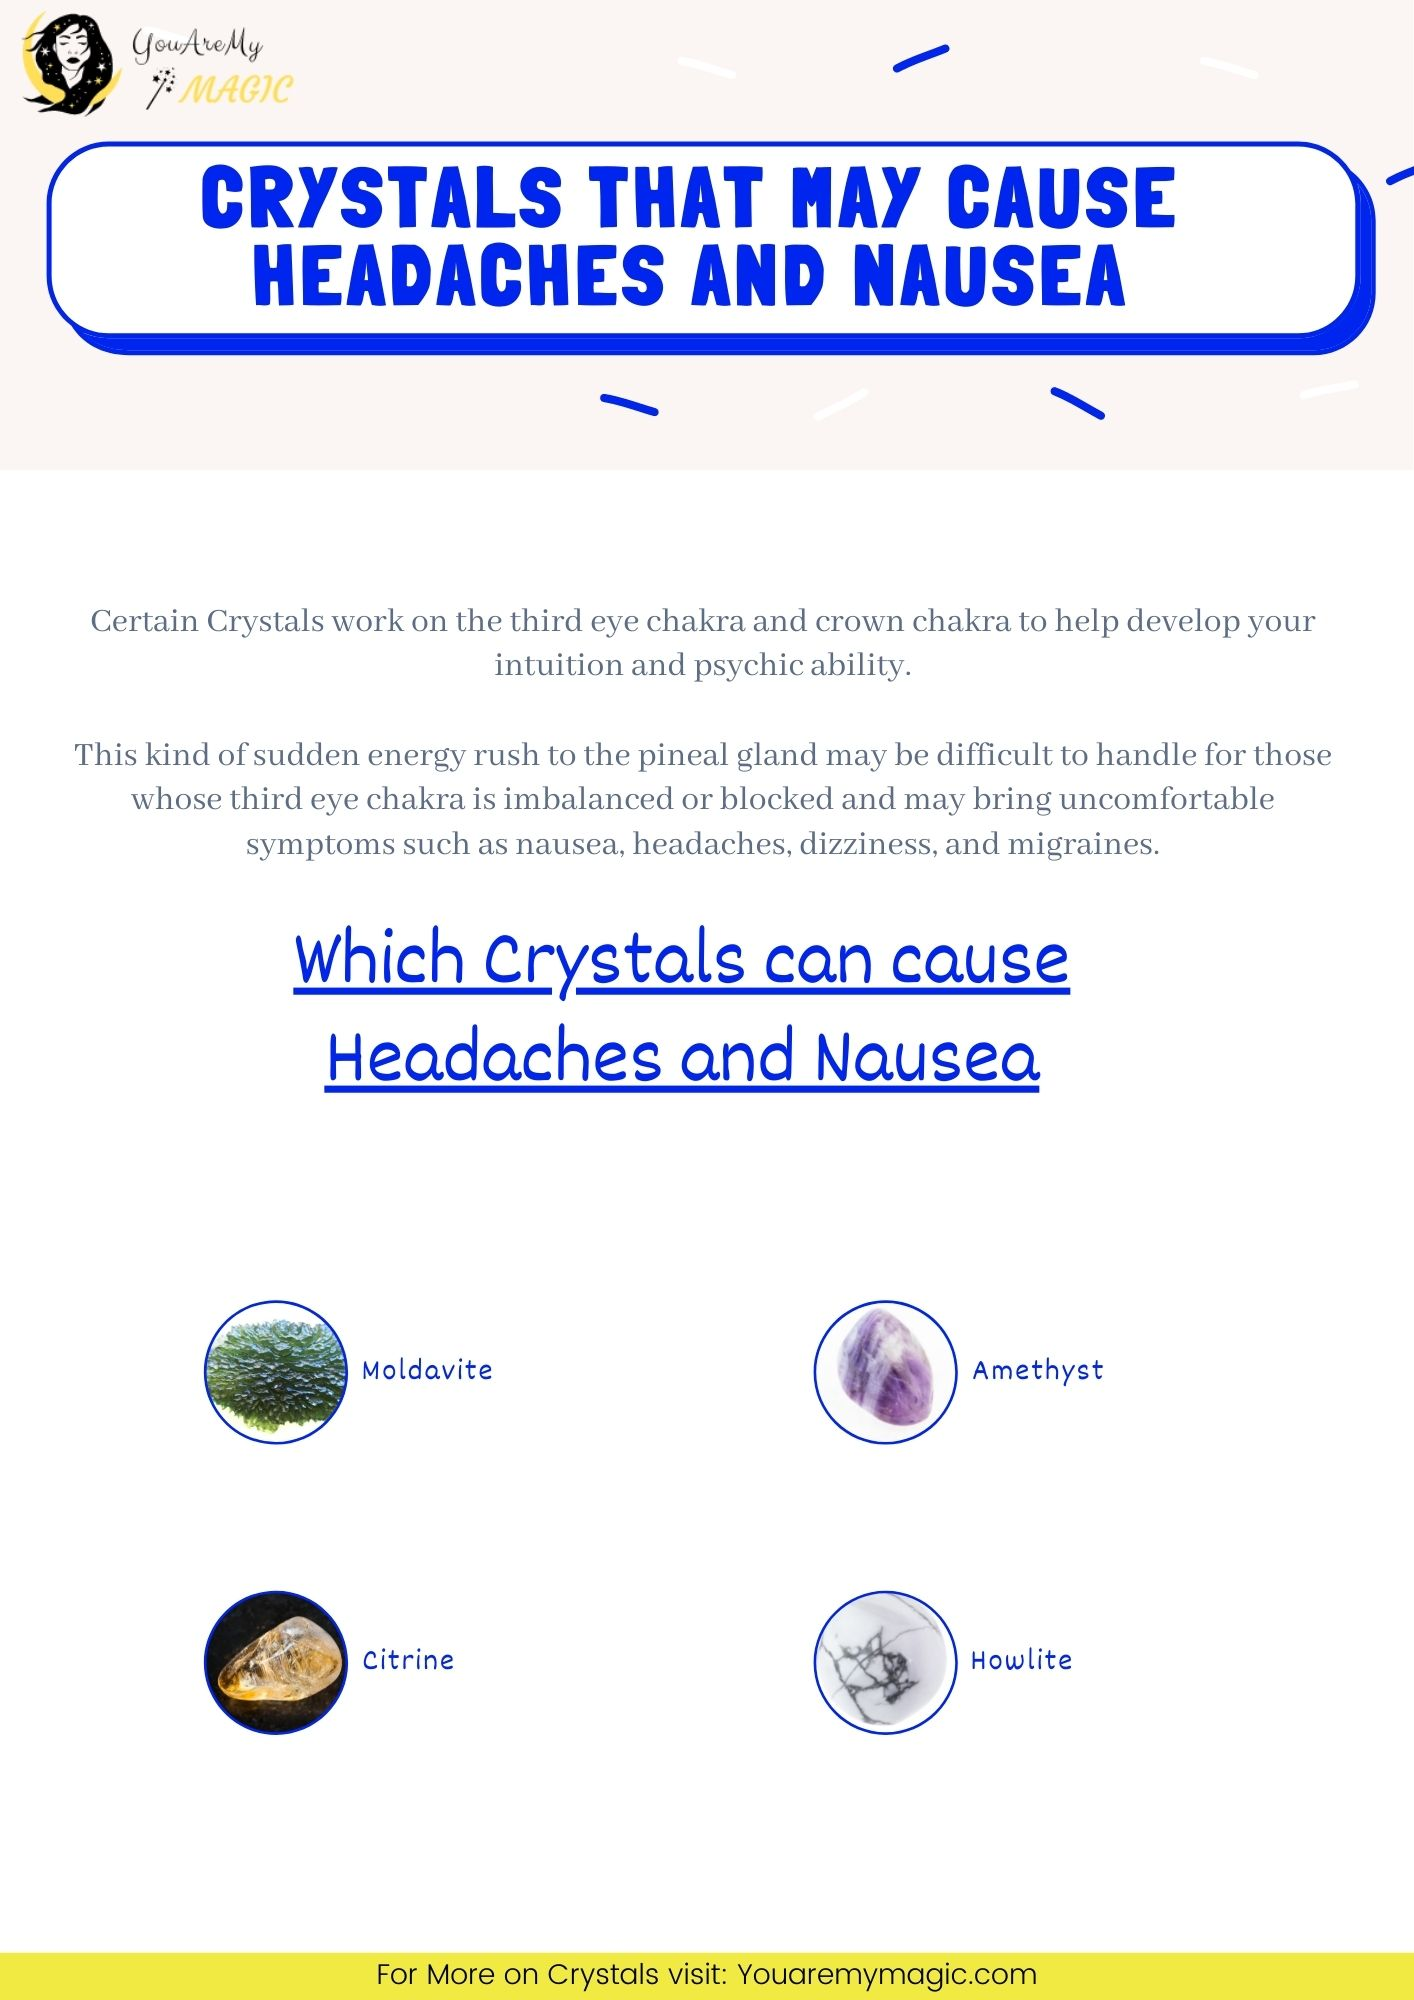 Crystal stone Side effect - Headaches and Nausea